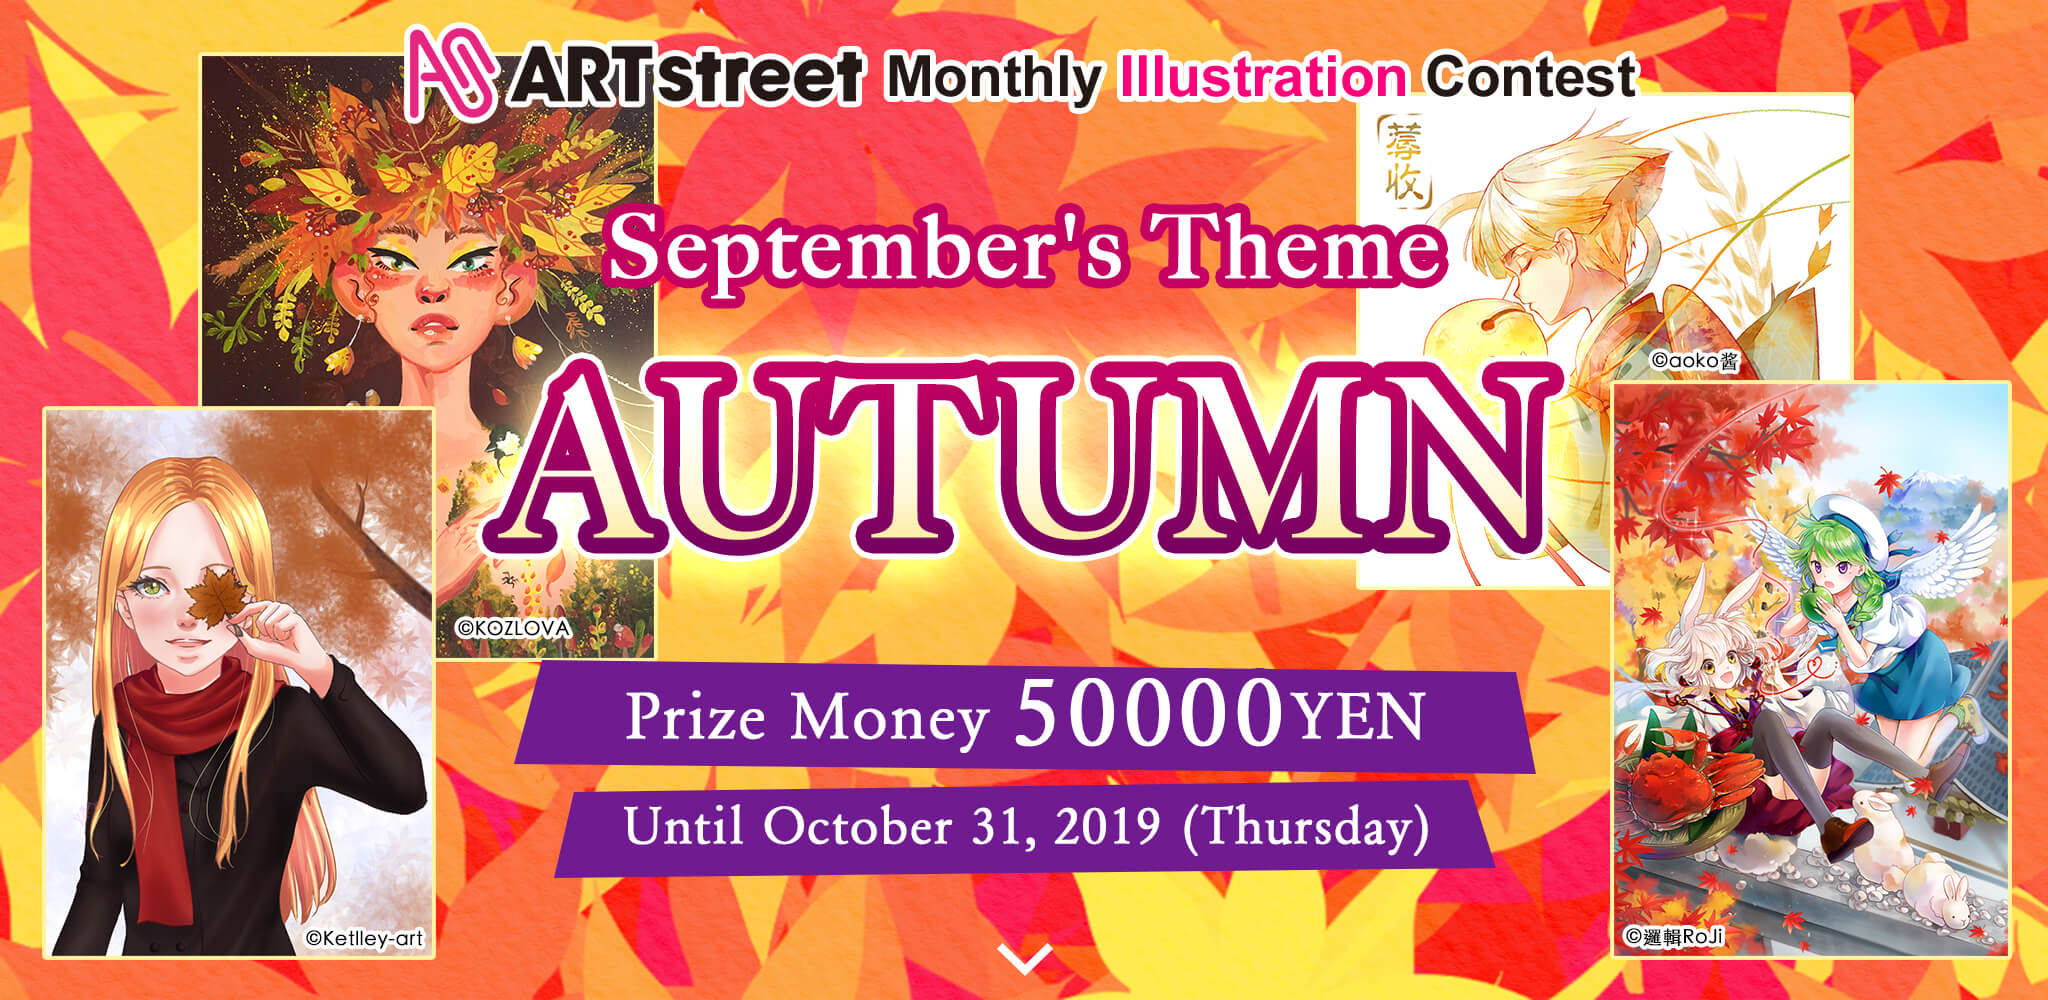 ART street Monthly Illustration Contest 201909 | Contest-Art Street by Medibang